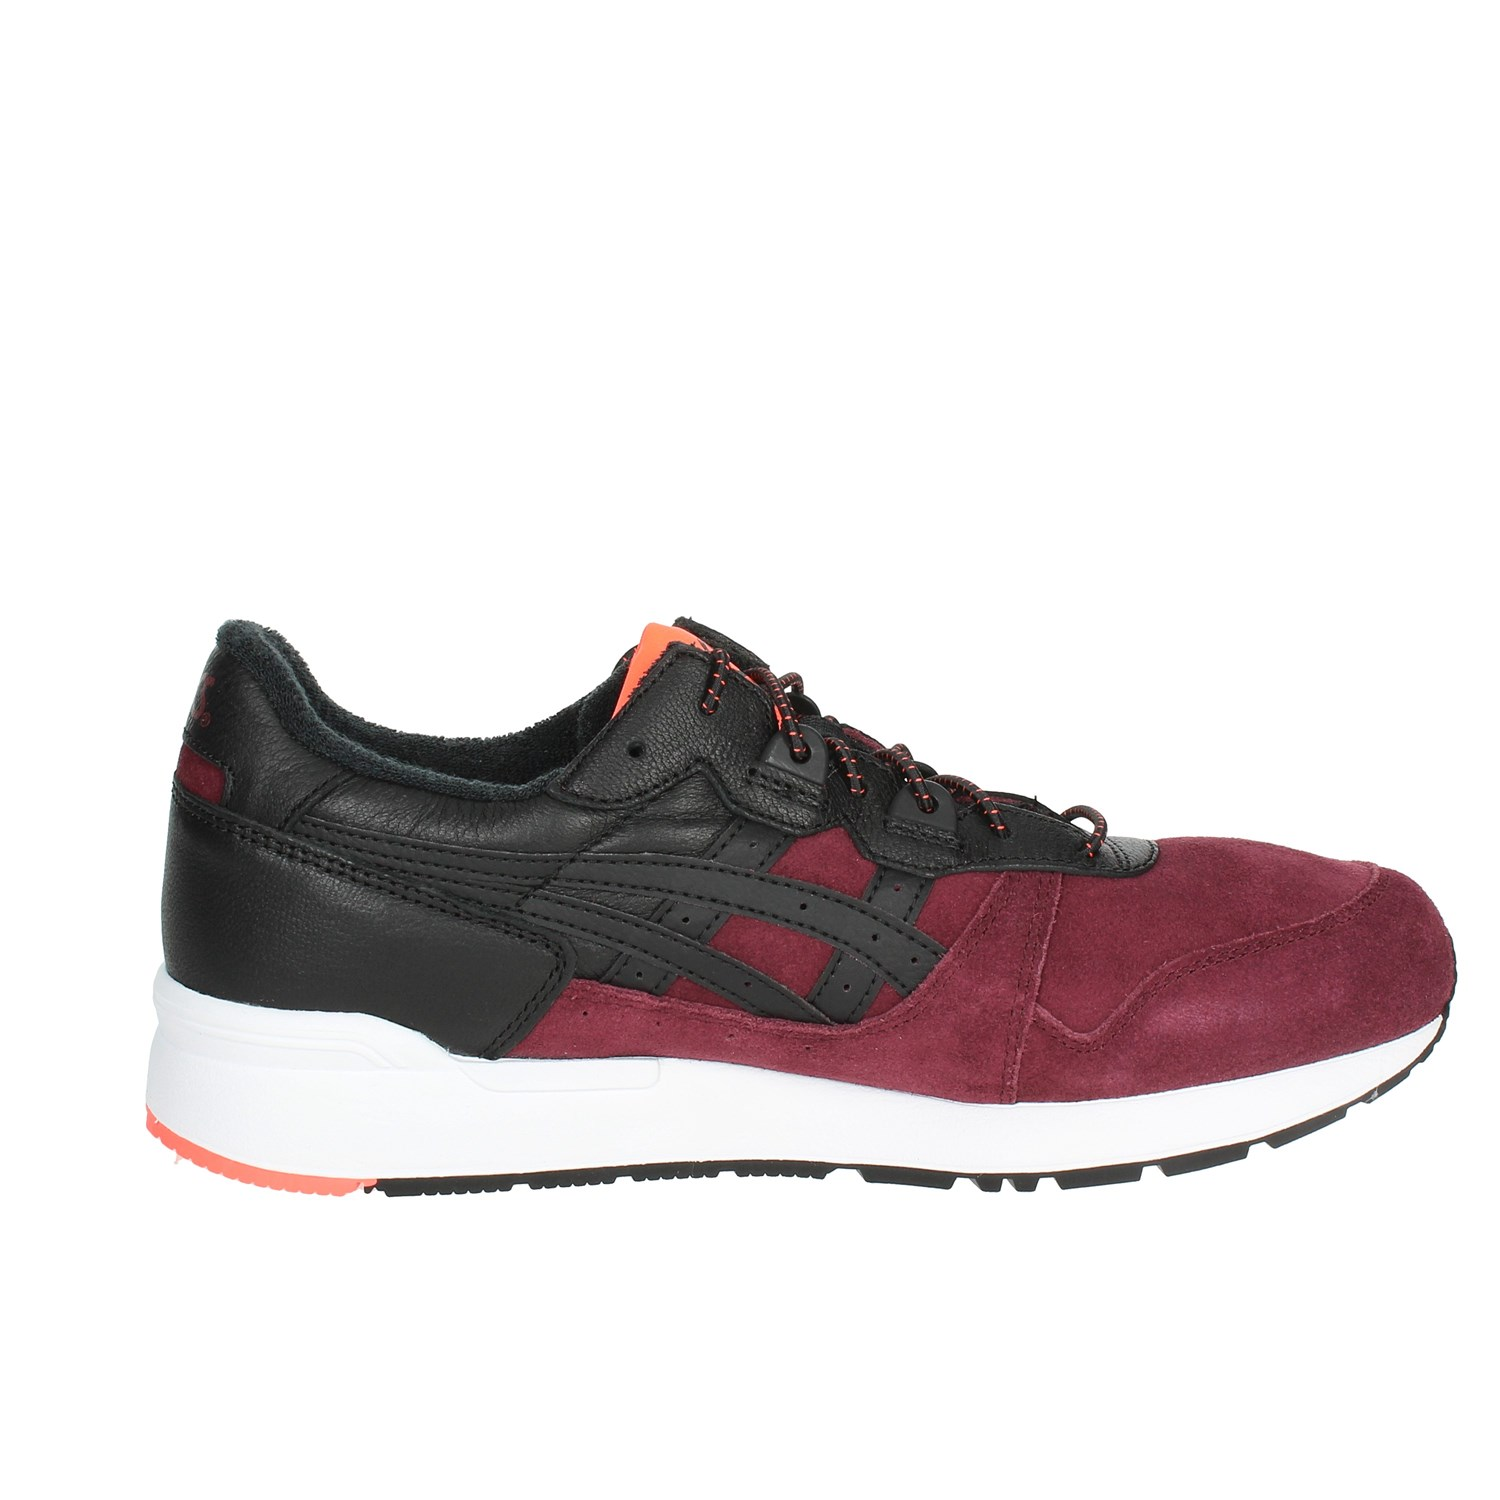 1193a134 Low Hombre Burgundy 600 Invierno Otoño Sneakers Asics A4xqwUaA